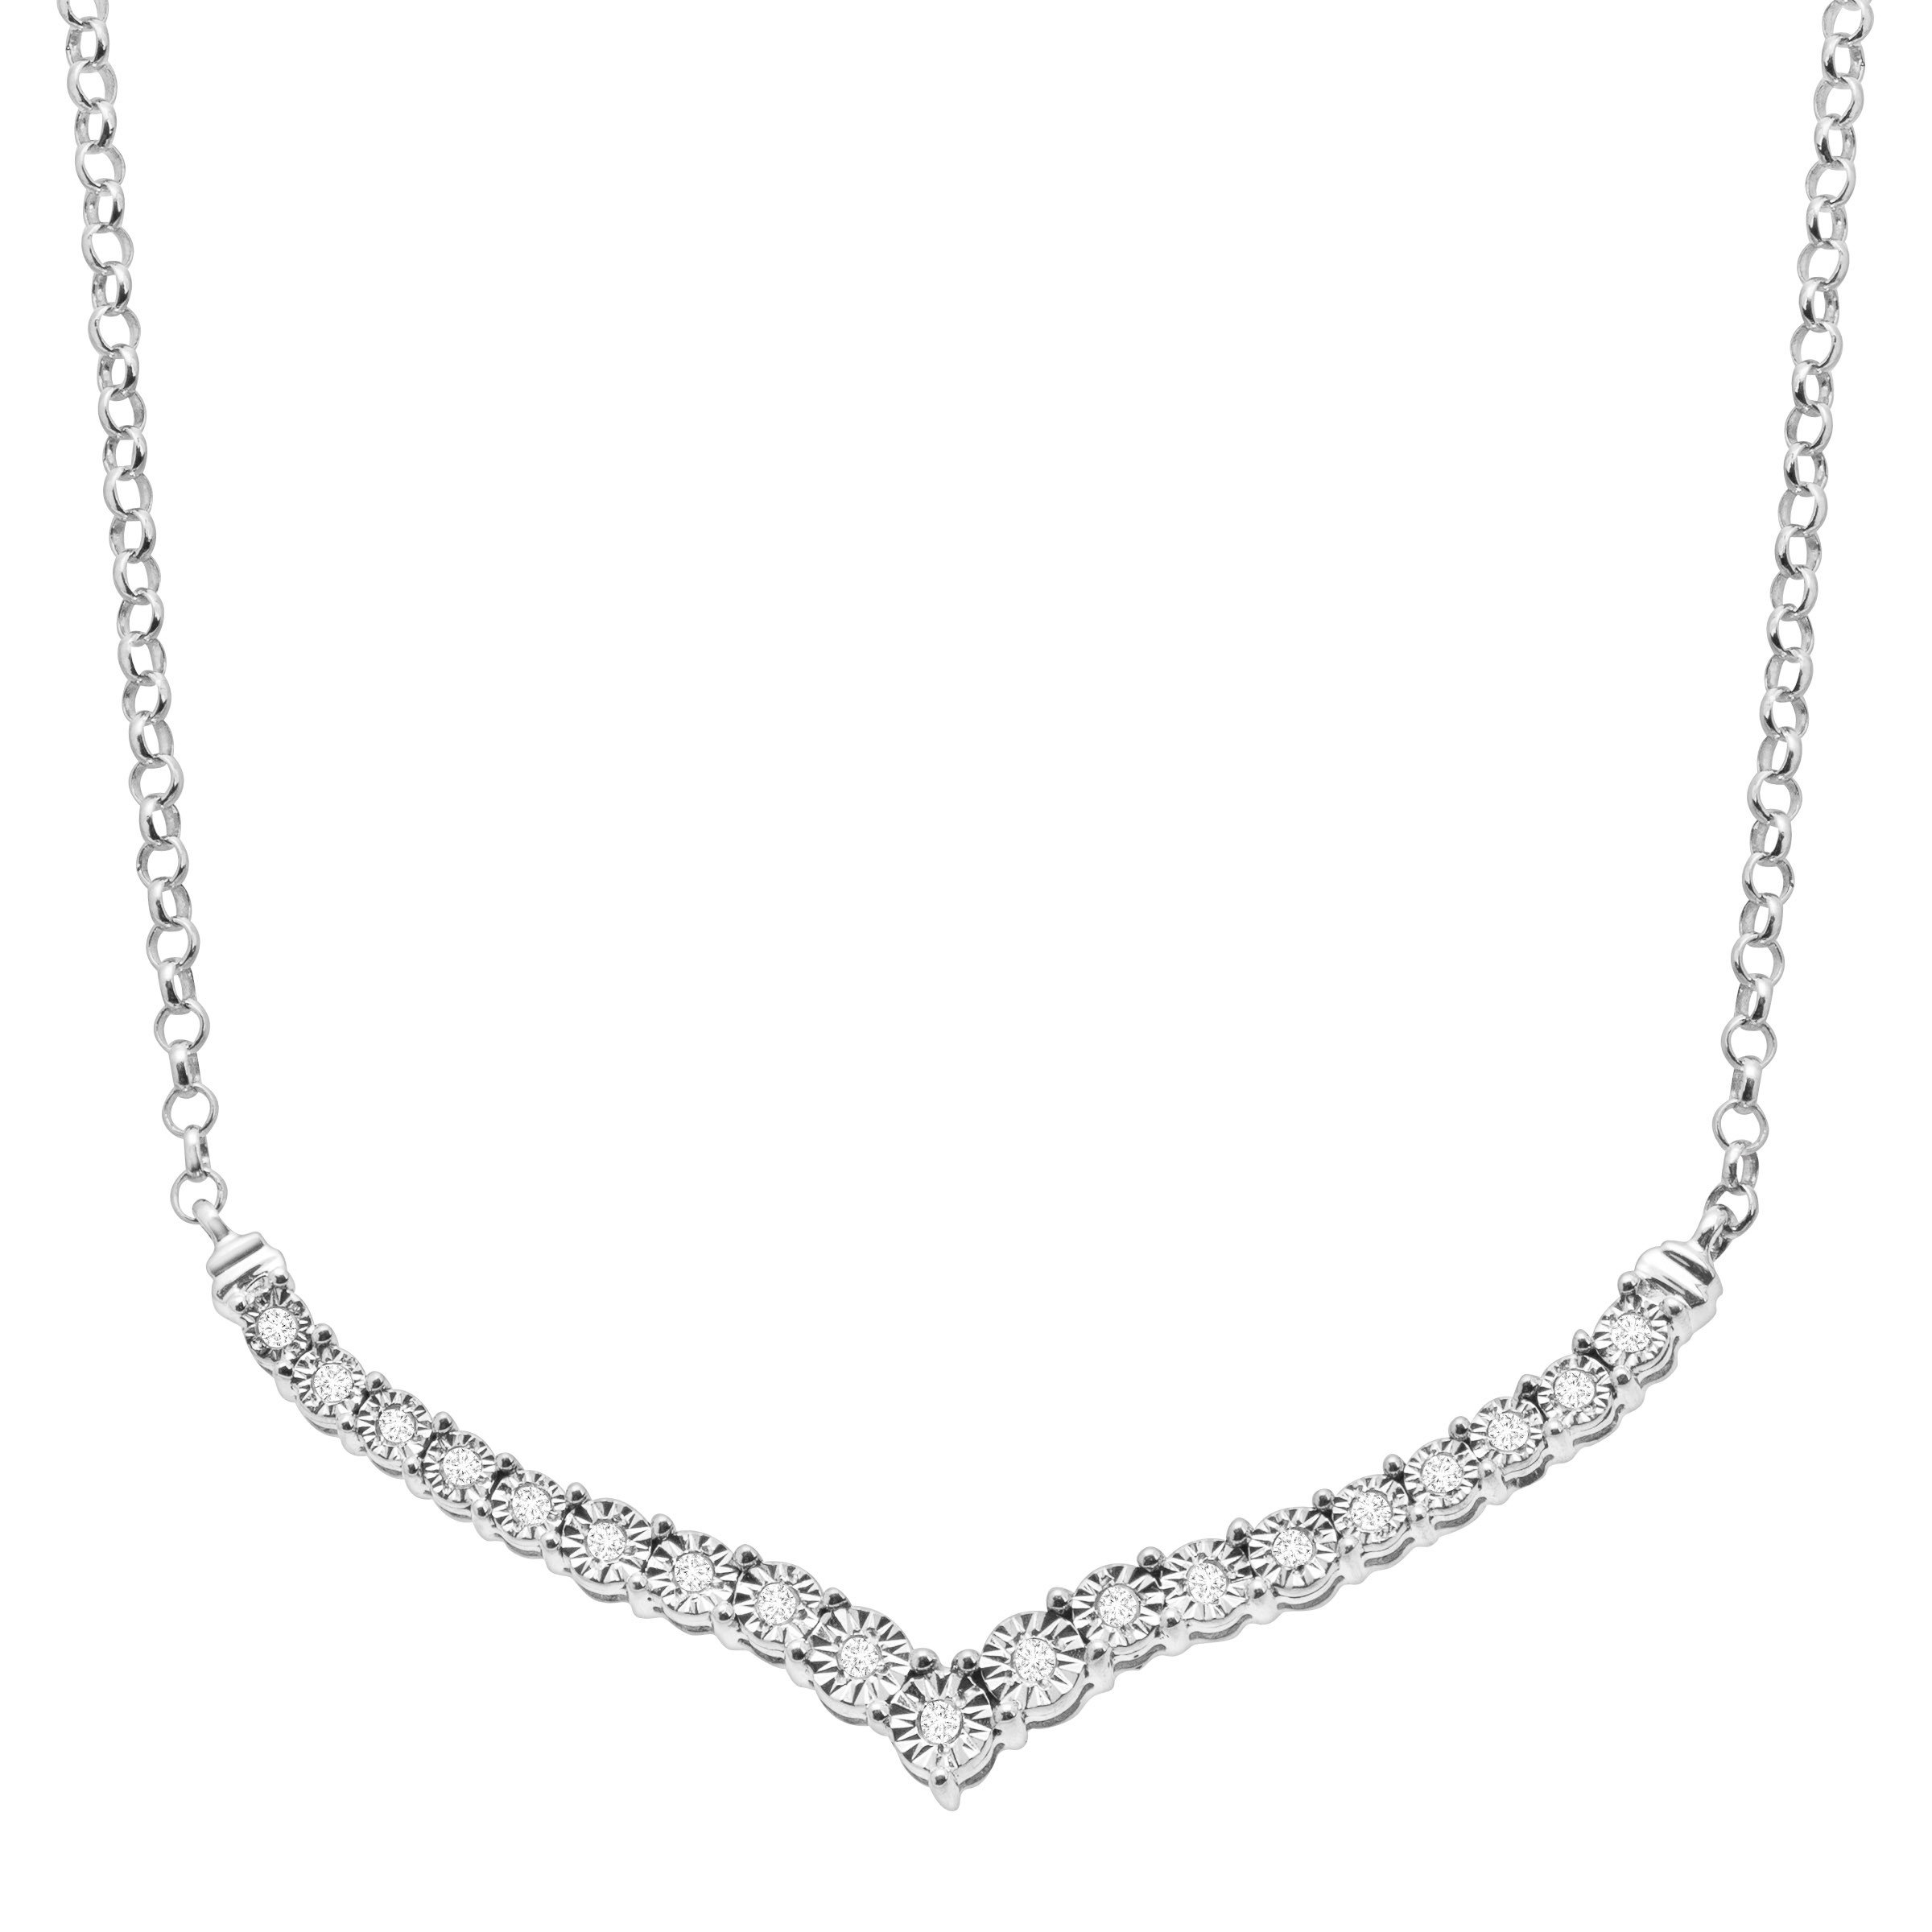 1/4 ct Diamond Chevron Necklace in Sterling Silver